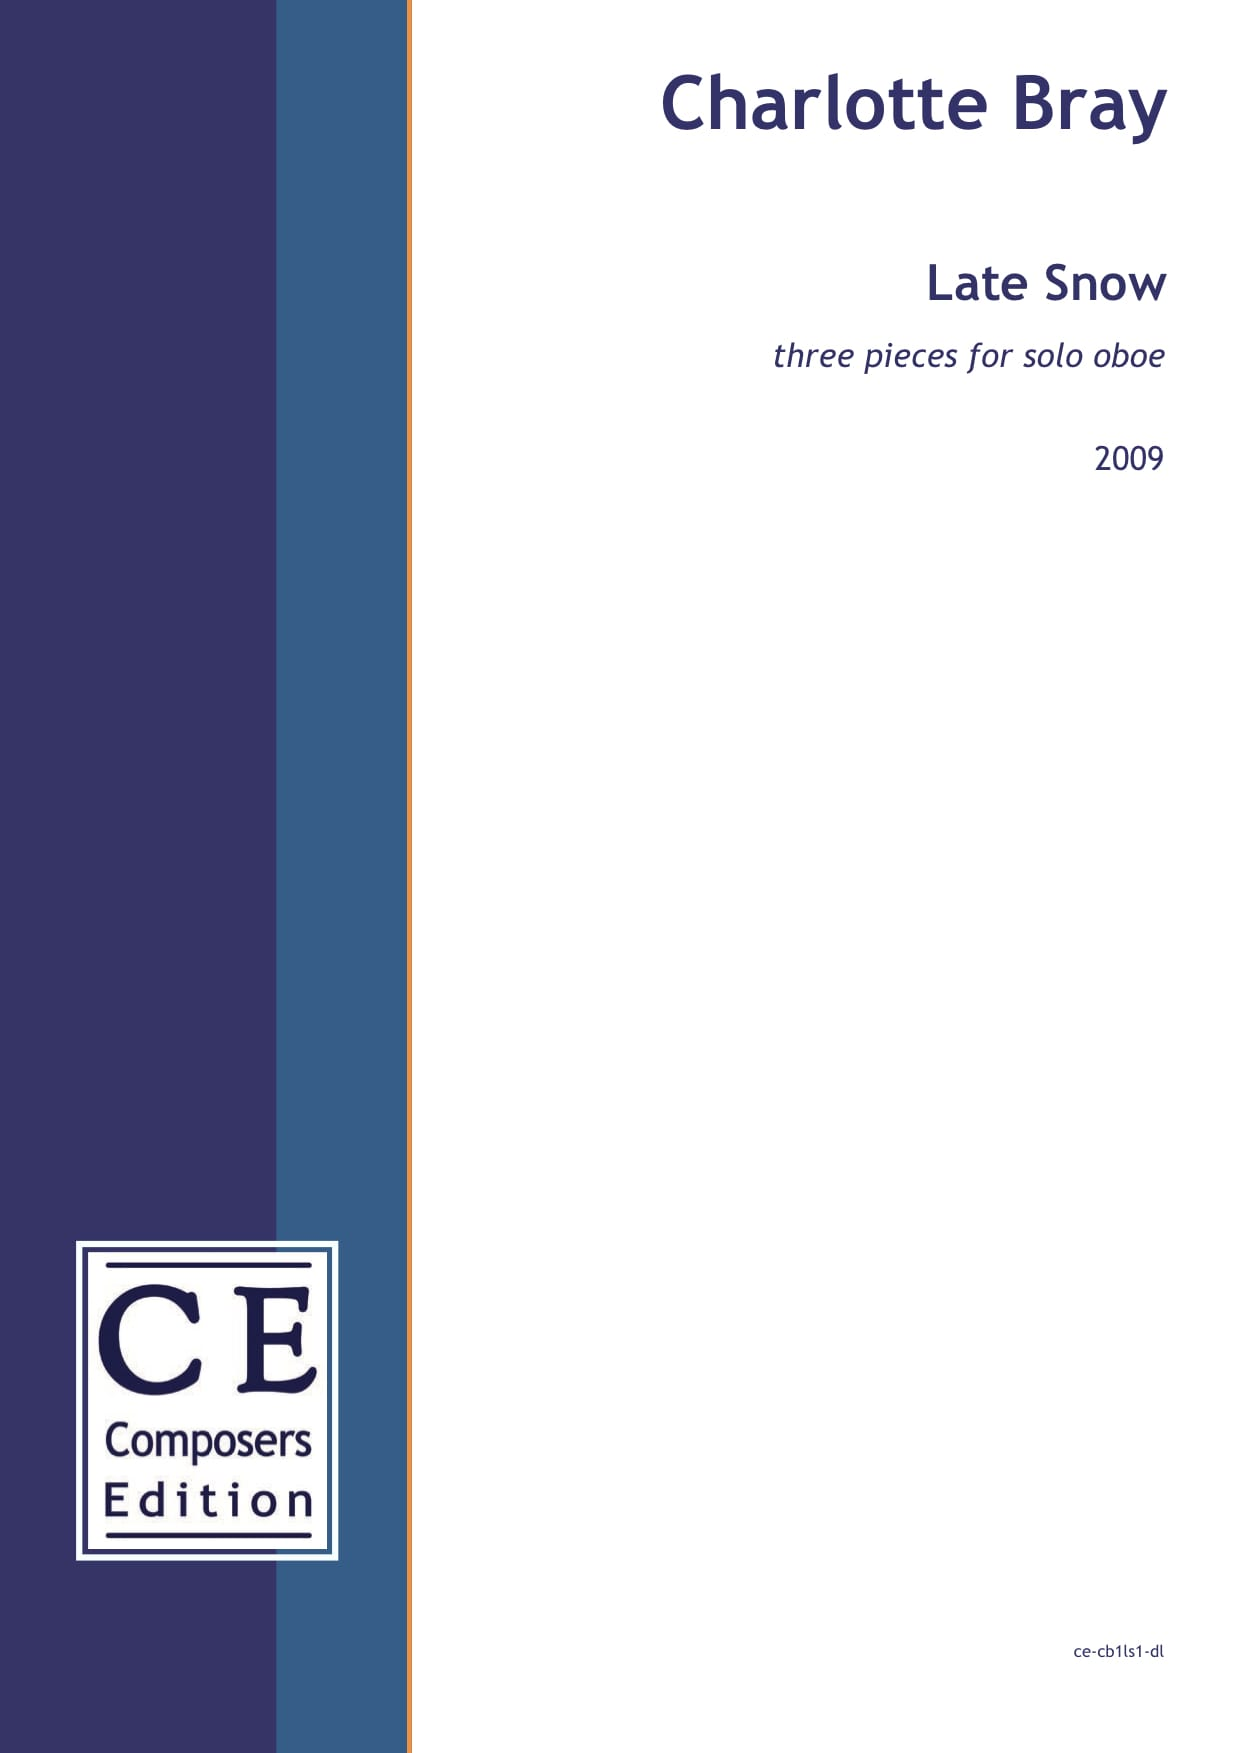 Charlotte Bray: Late Snow three pieces for solo oboe